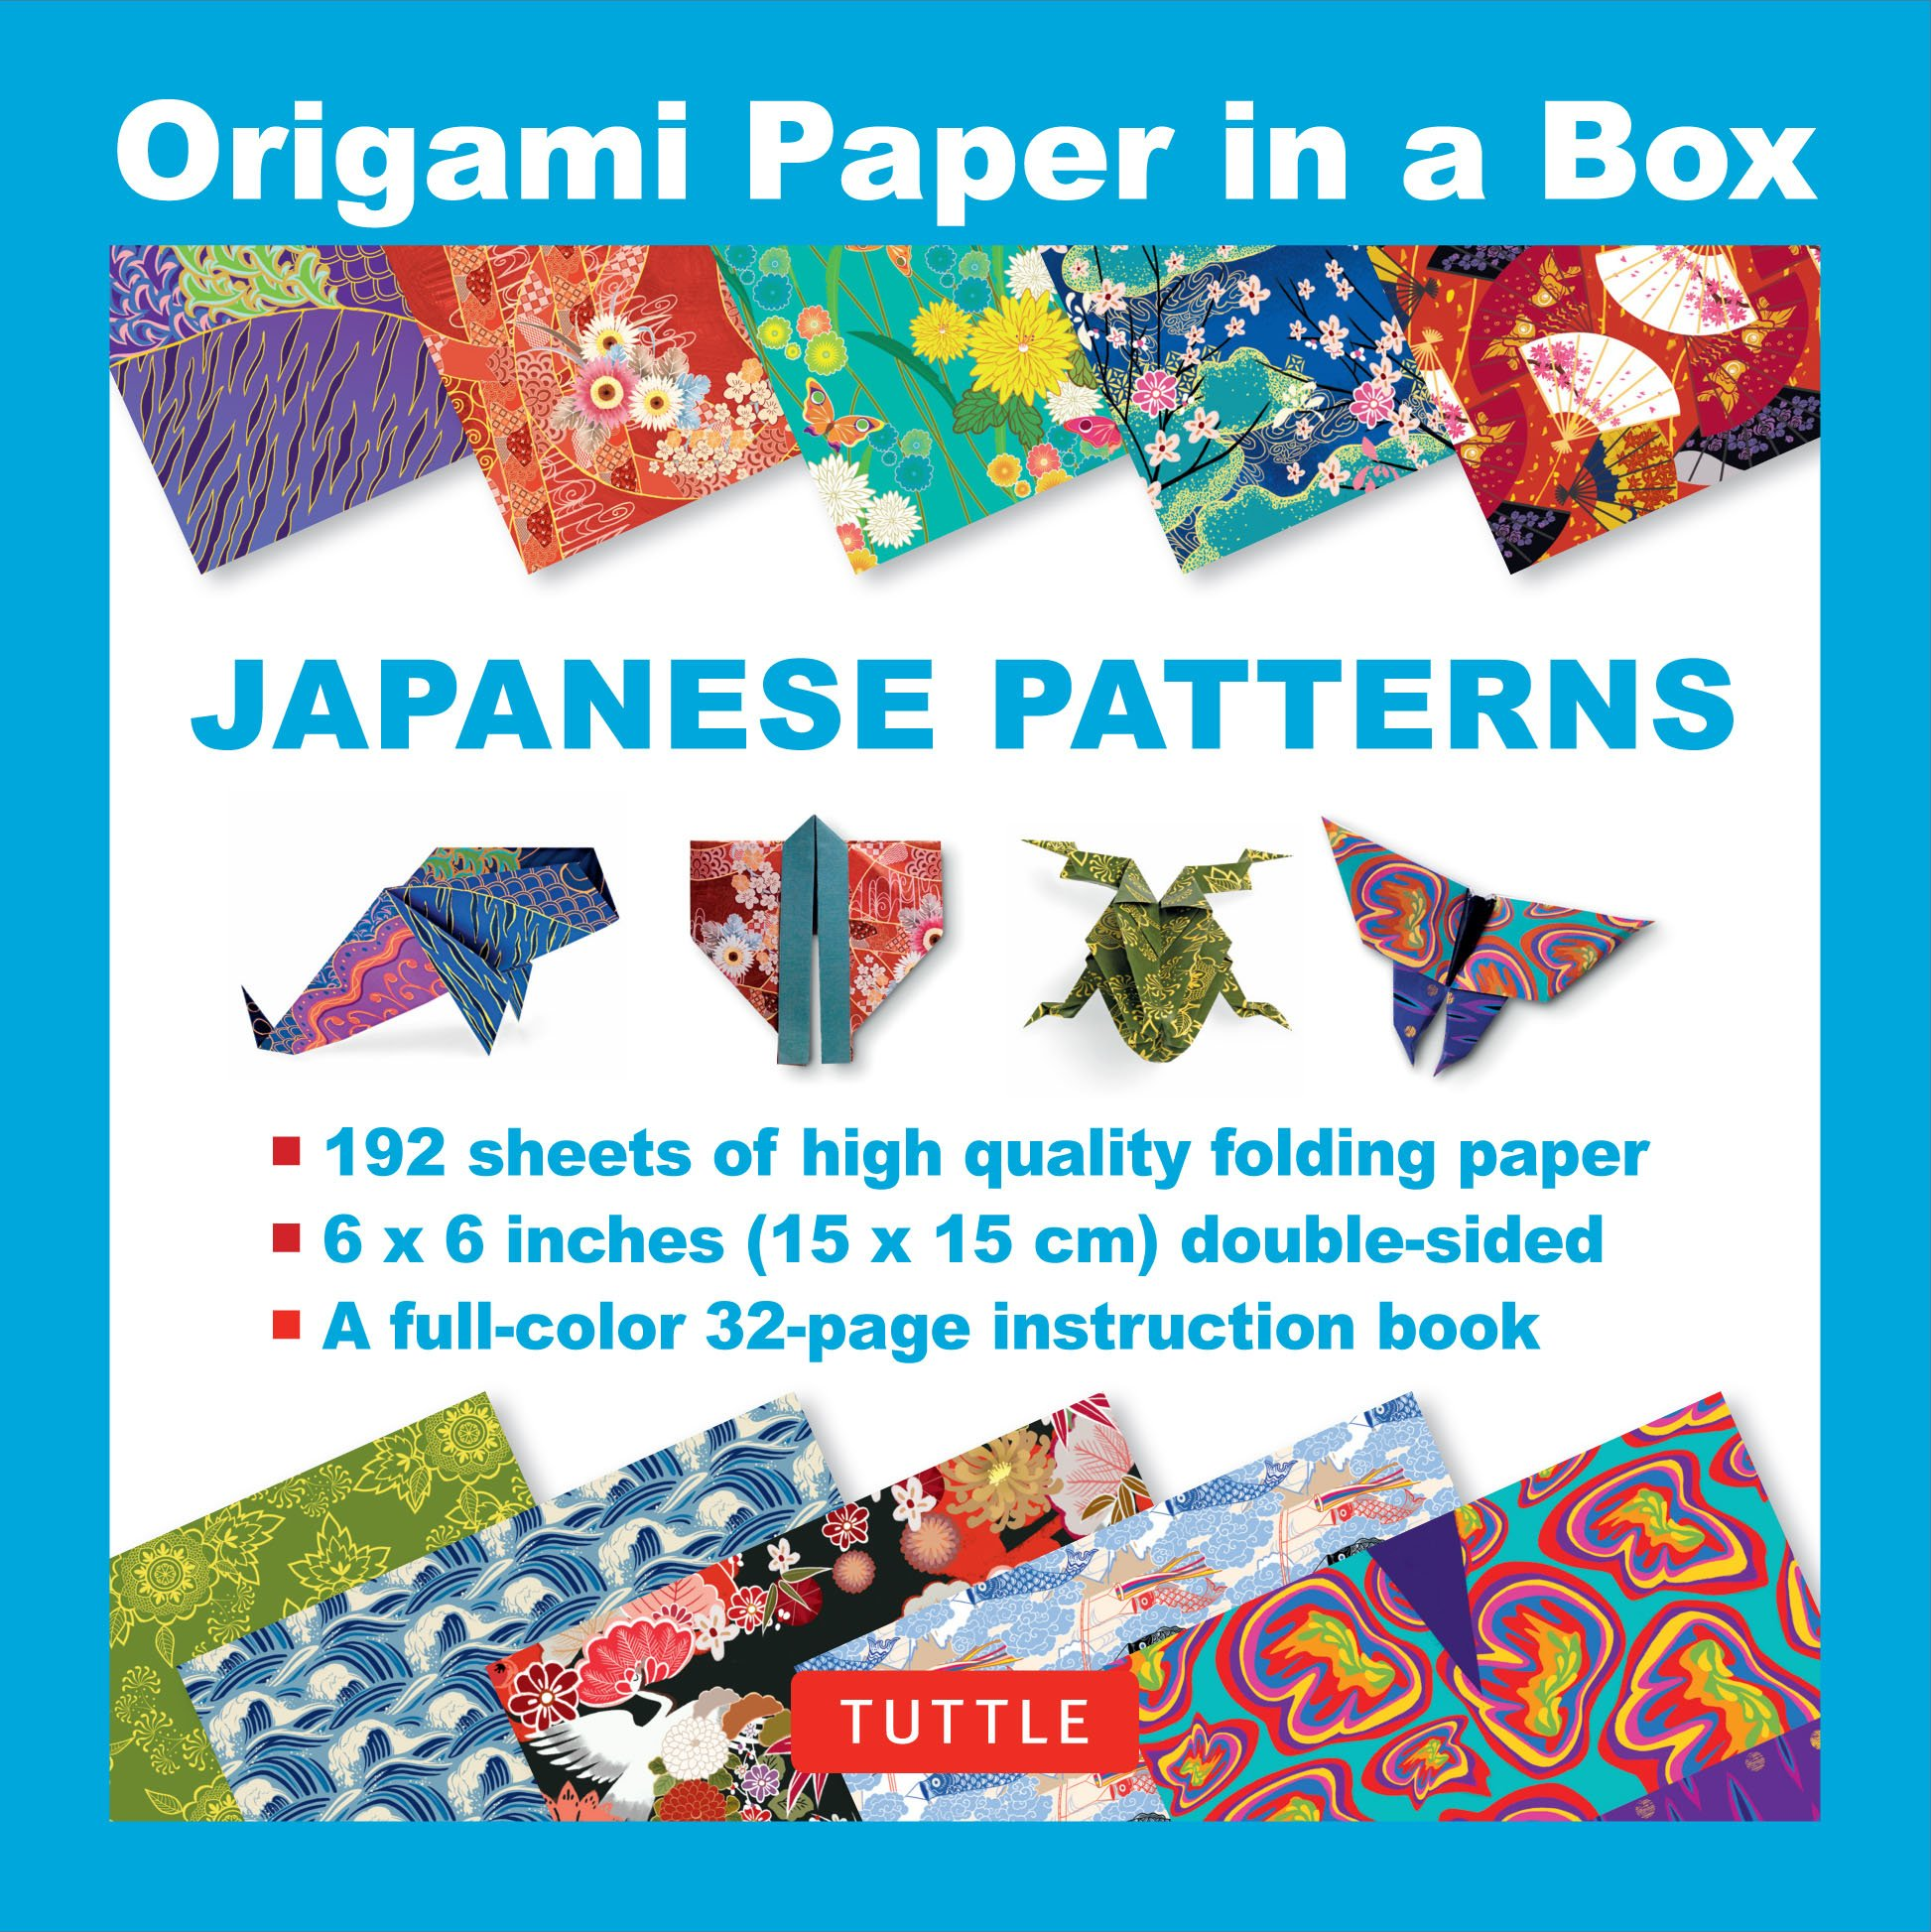 63bc5a2df10fb Amazon.com: Origami Paper in a Box - Japanese Patterns: 192 Sheets ...